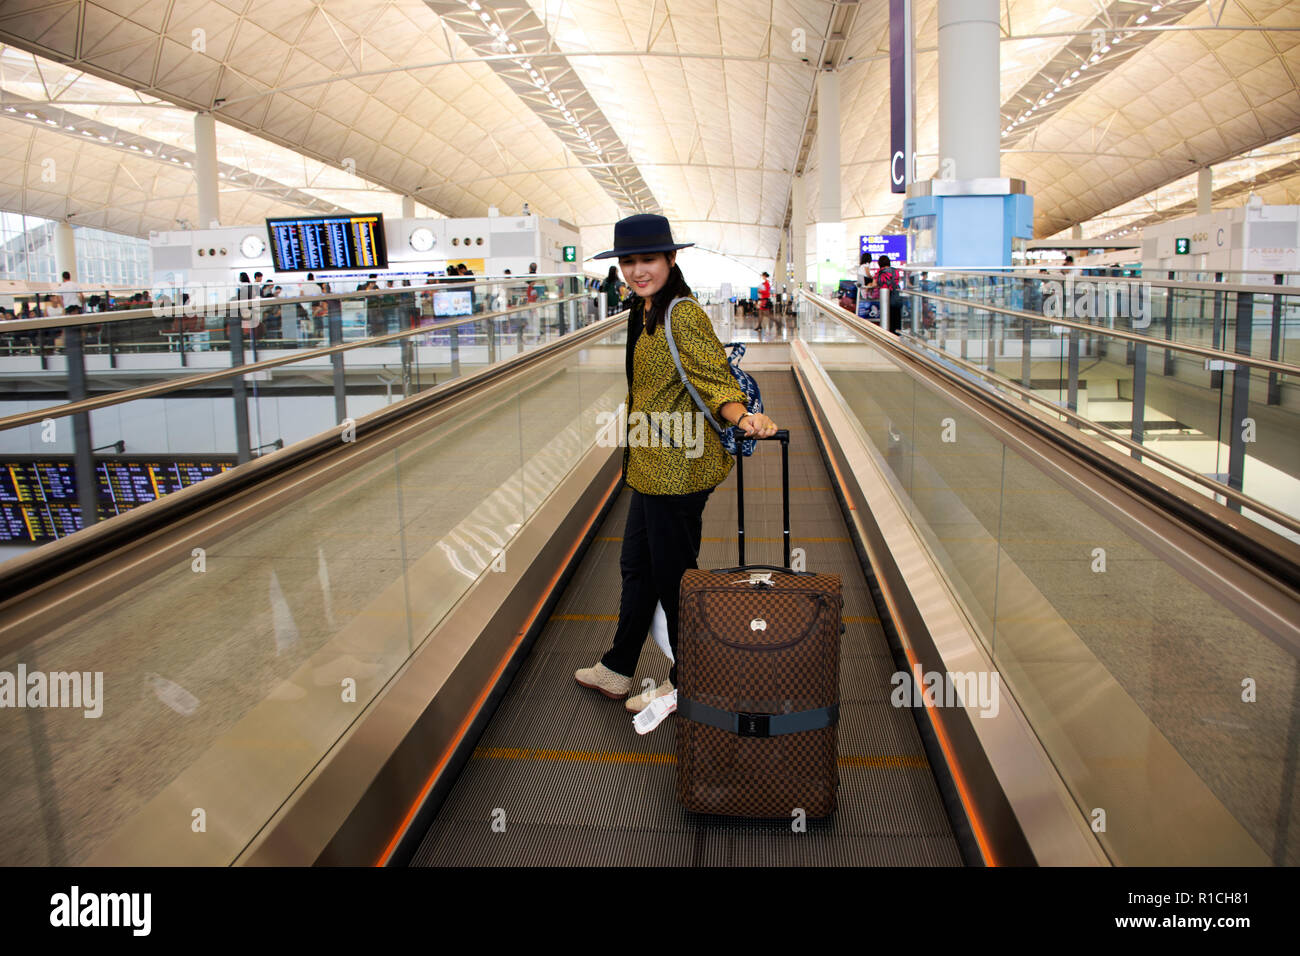 Travelers thai woman walking and drag luggage on escalator in terminal at Chek Lap Kok or Hong Kong International Airport on September 10, 2018 in Hon - Stock Image